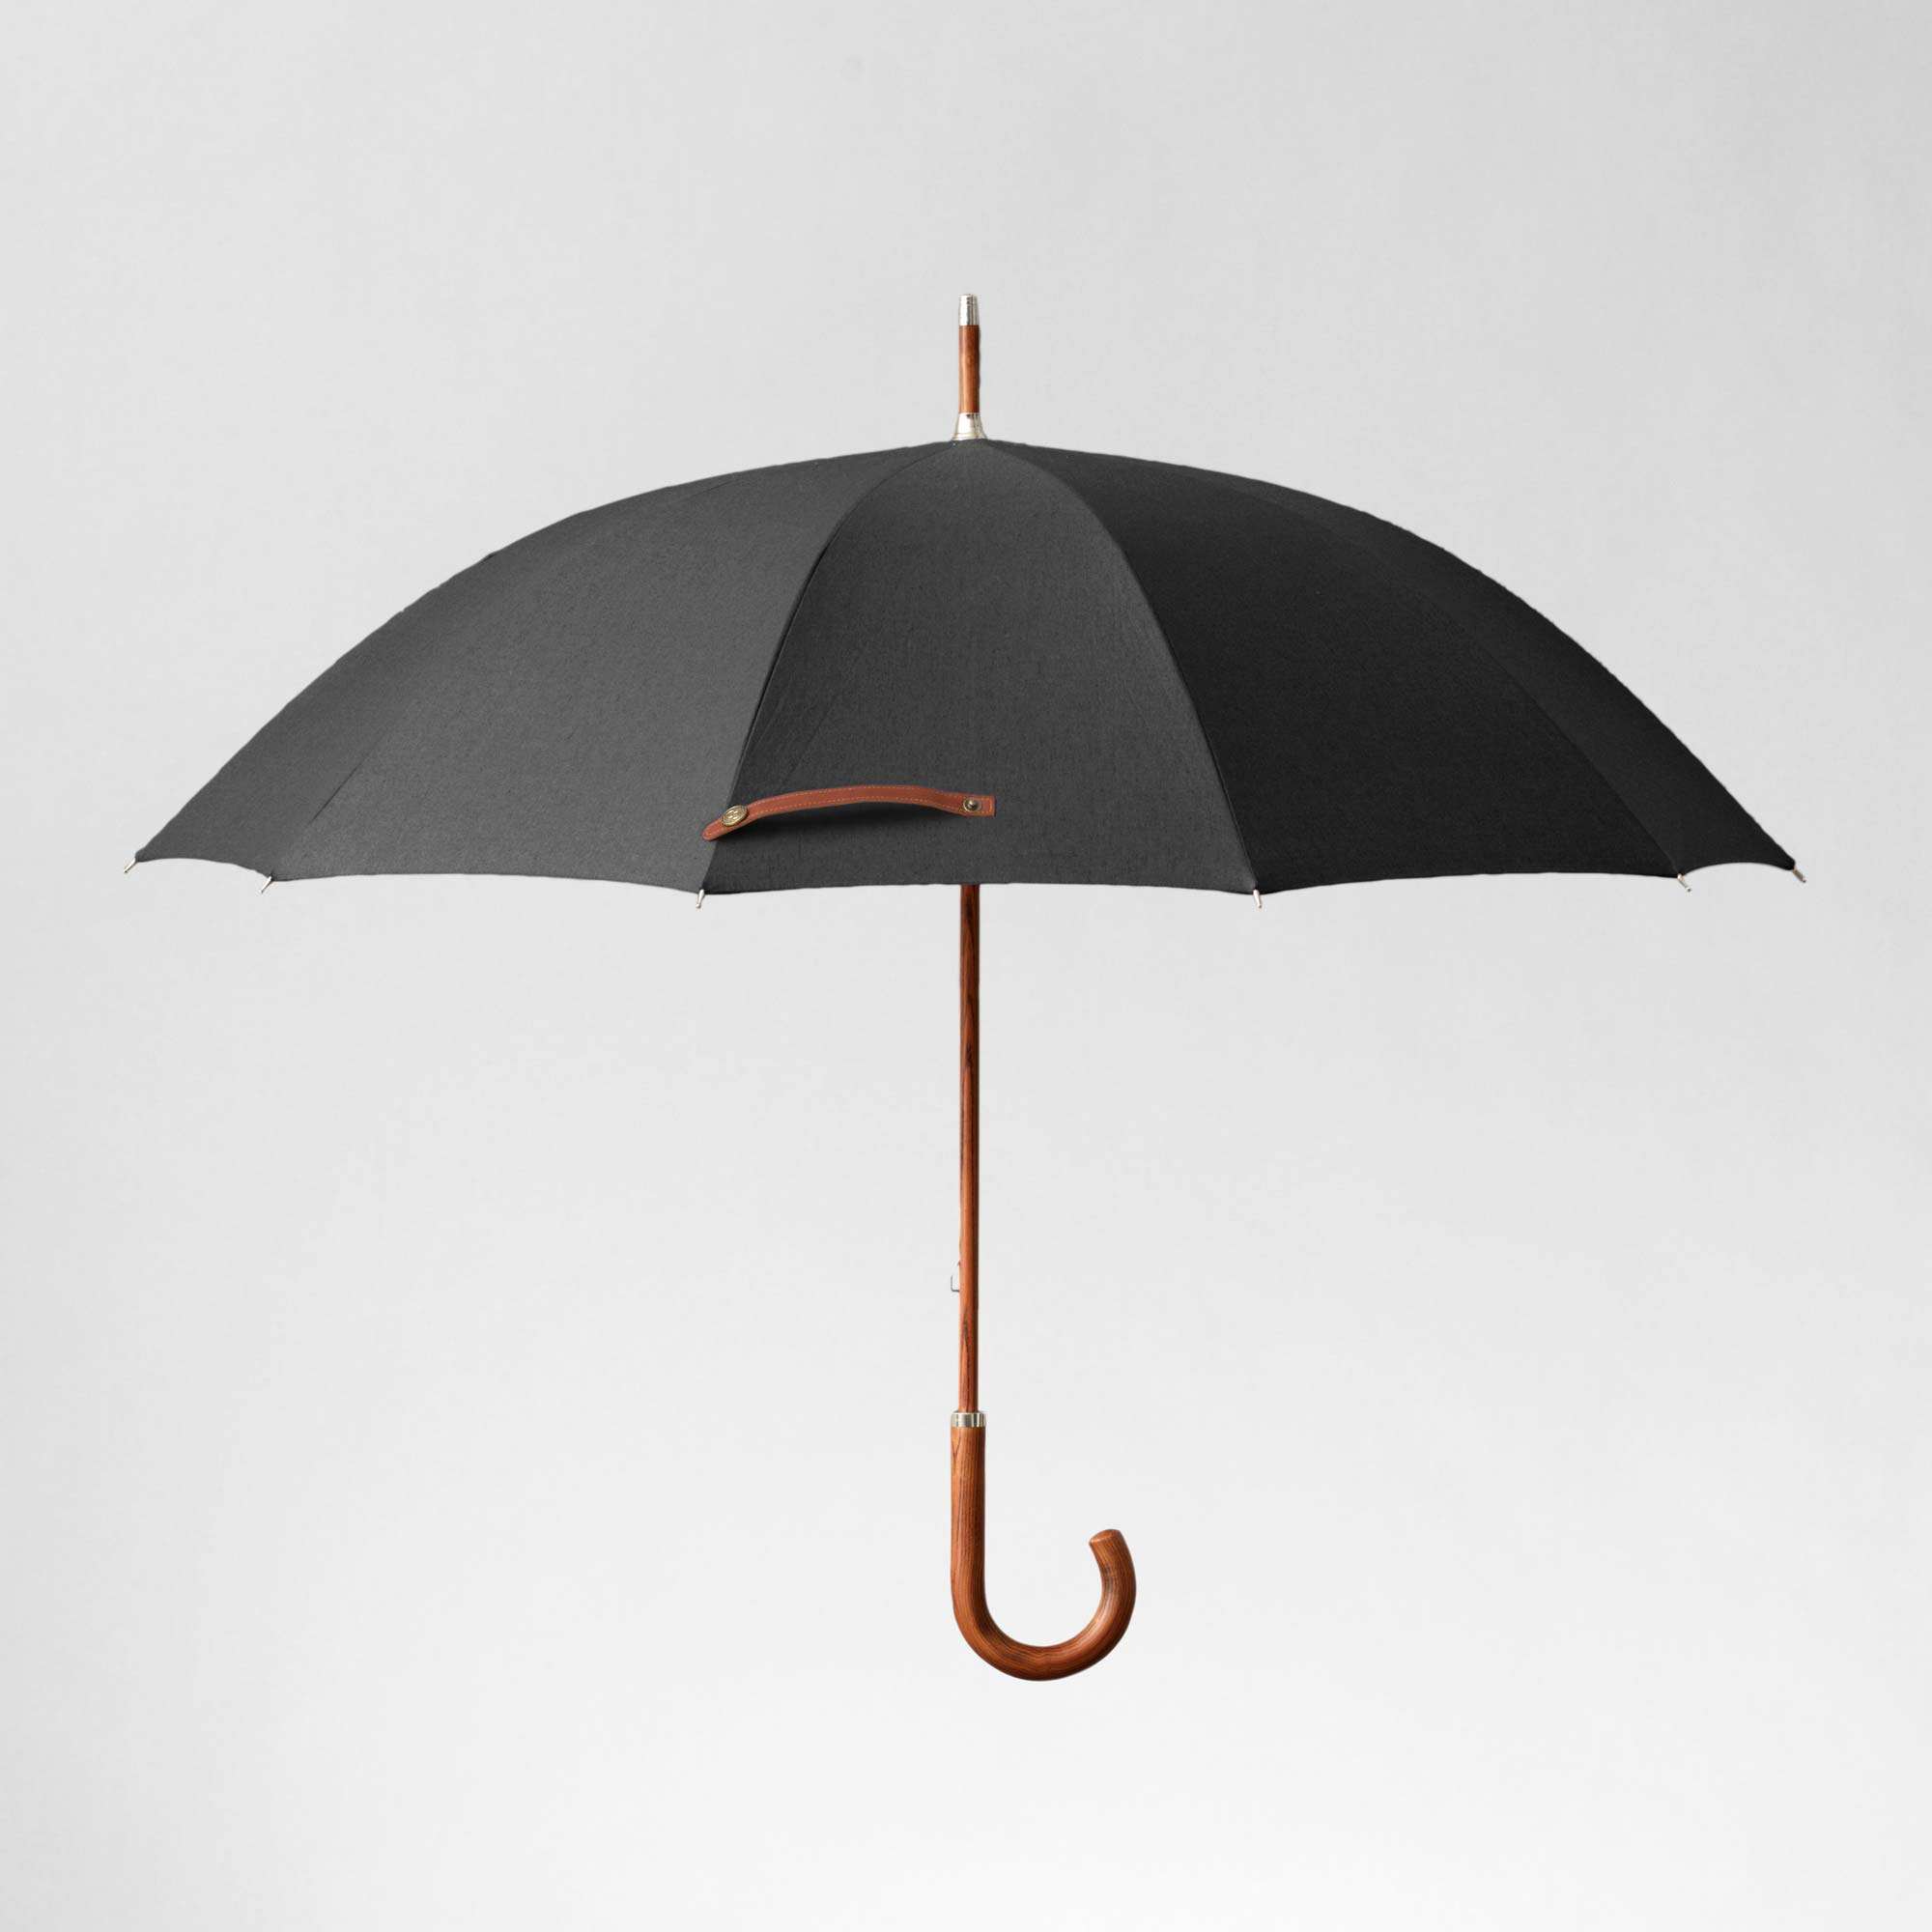 A high quality classic black umbrella